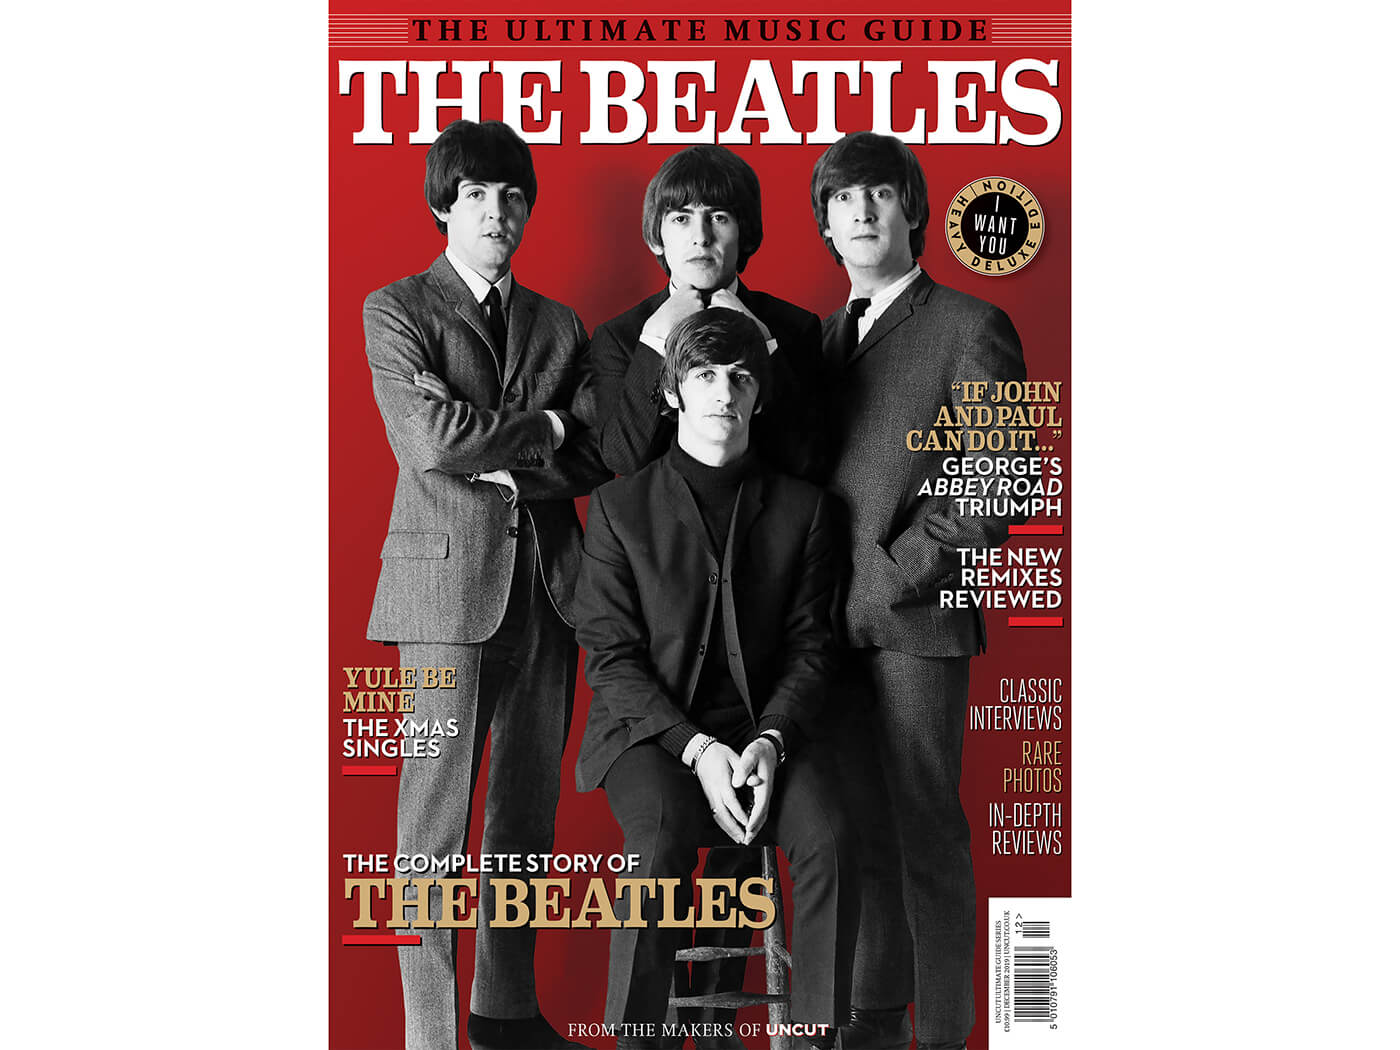 The Beatles – Deluxe Ultimate Music Guide - UNCUT